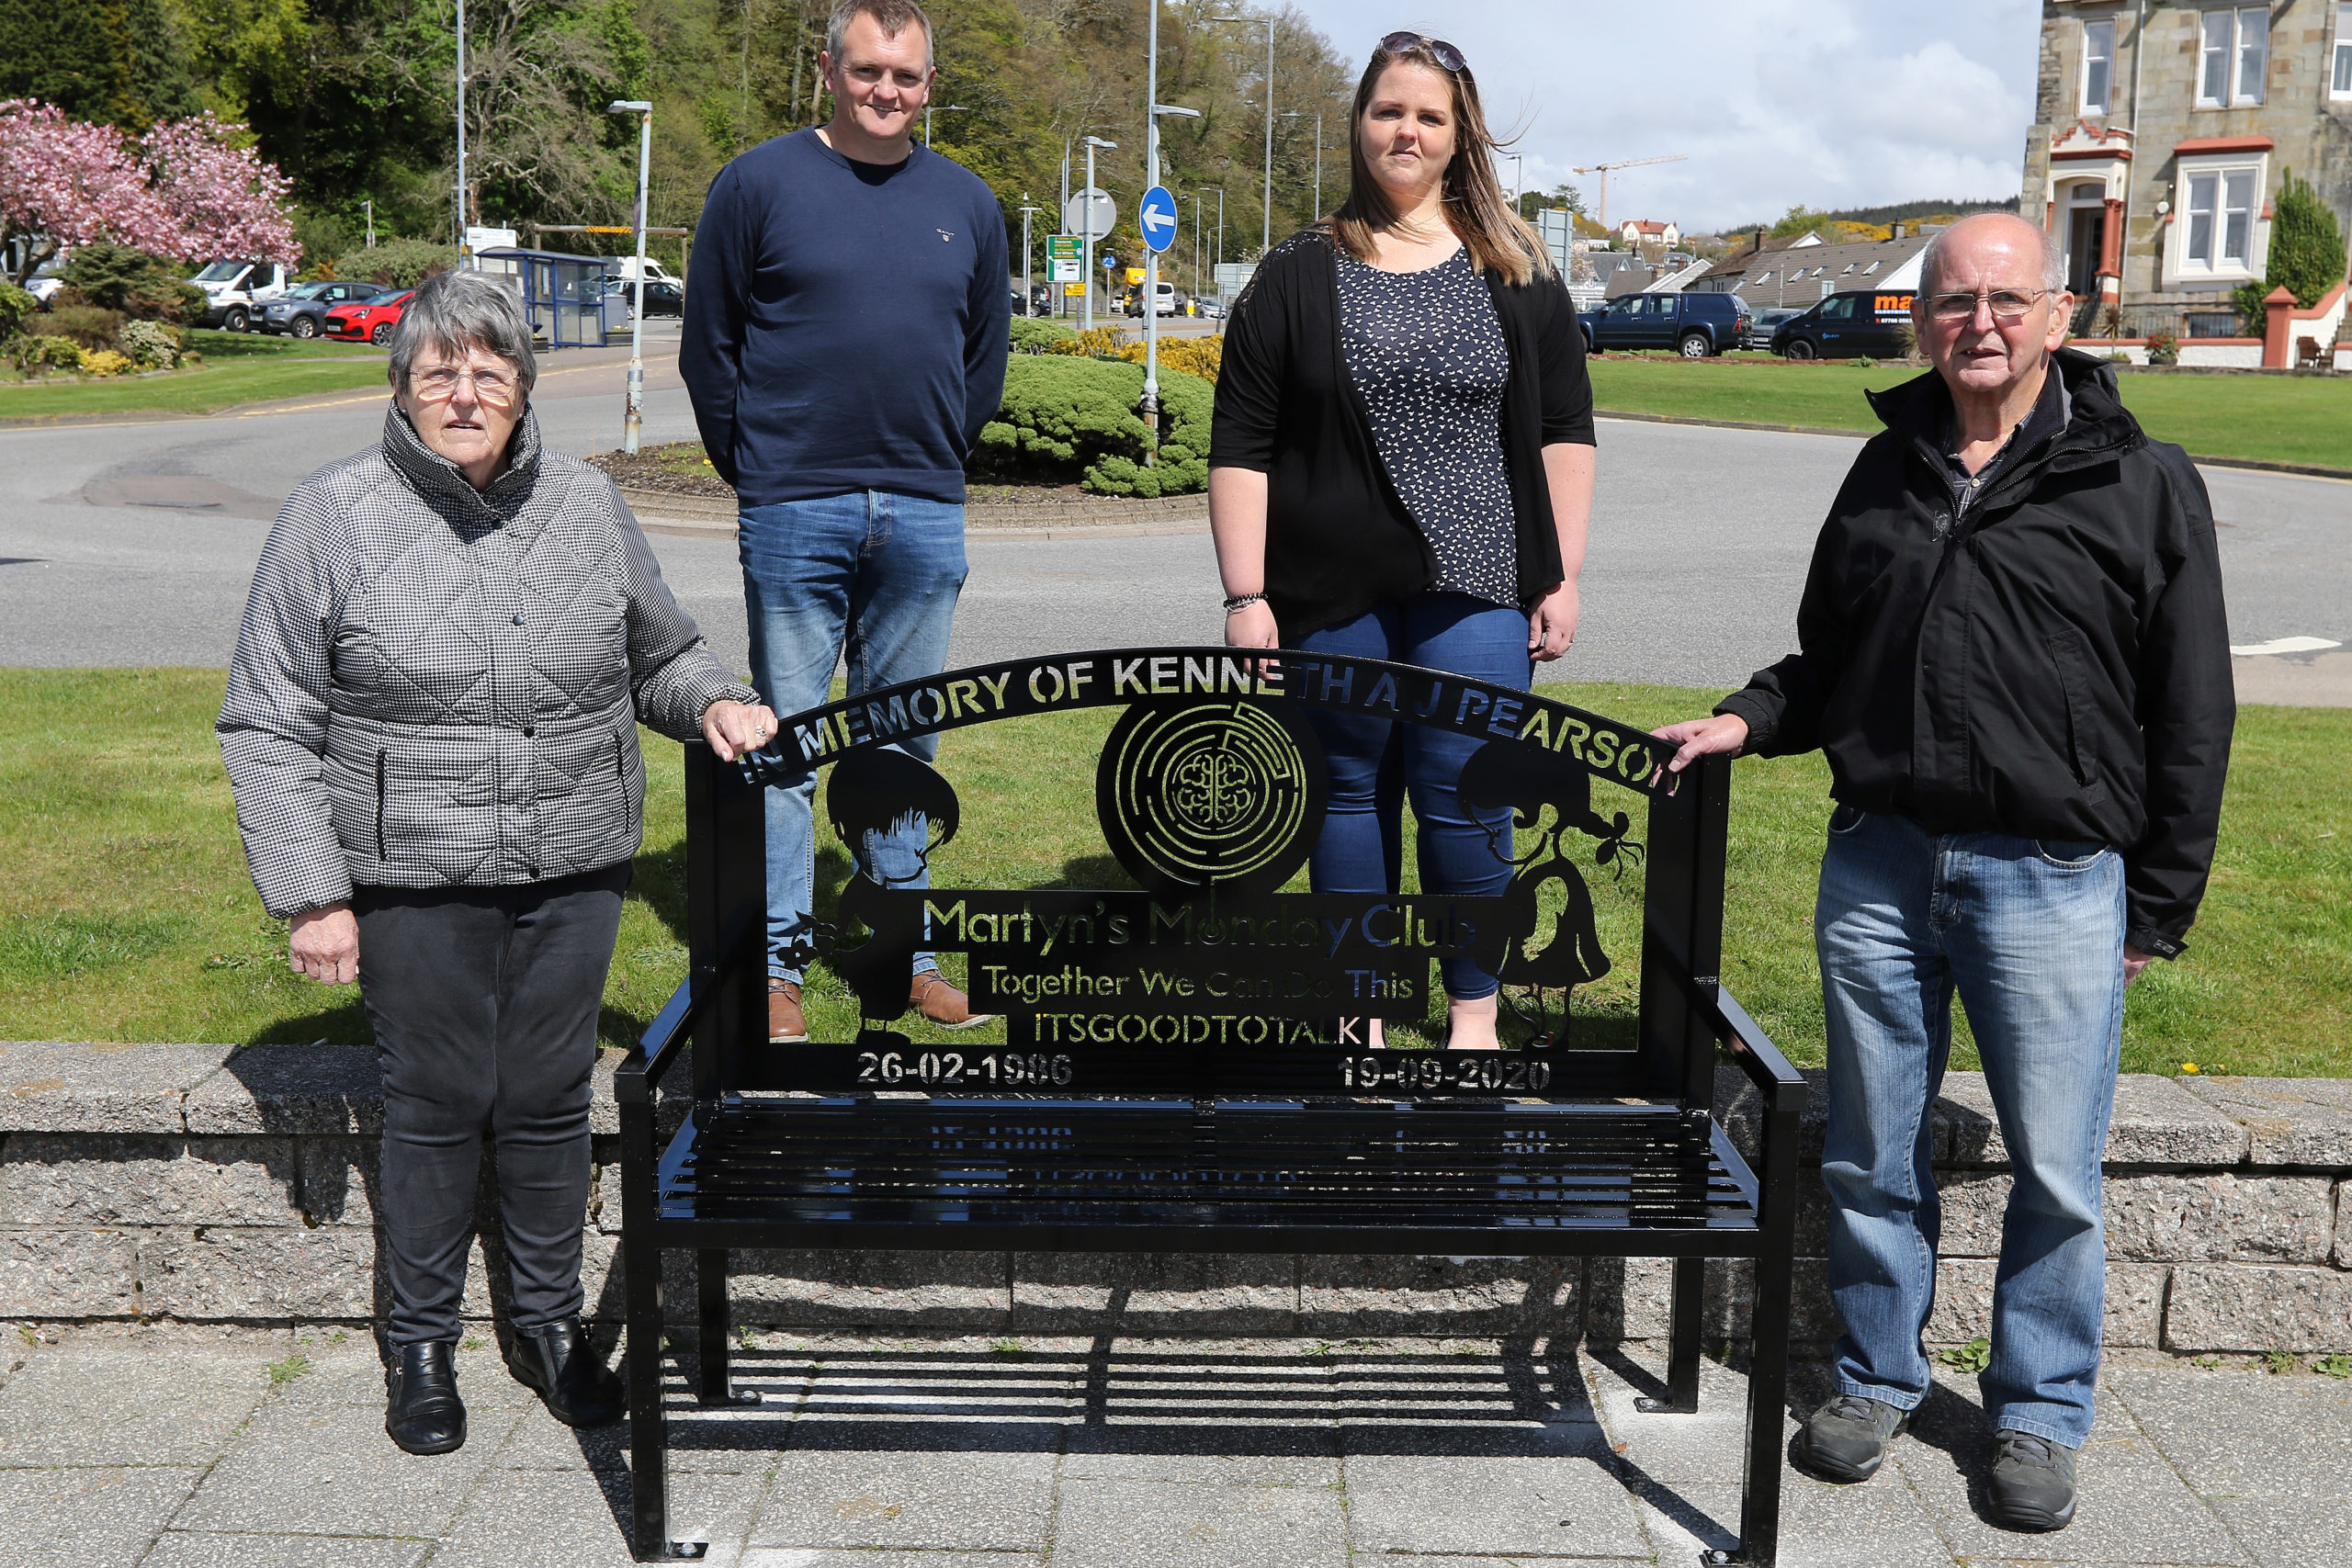 Oban's Kenneth remembered with talking bench   The Oban Times